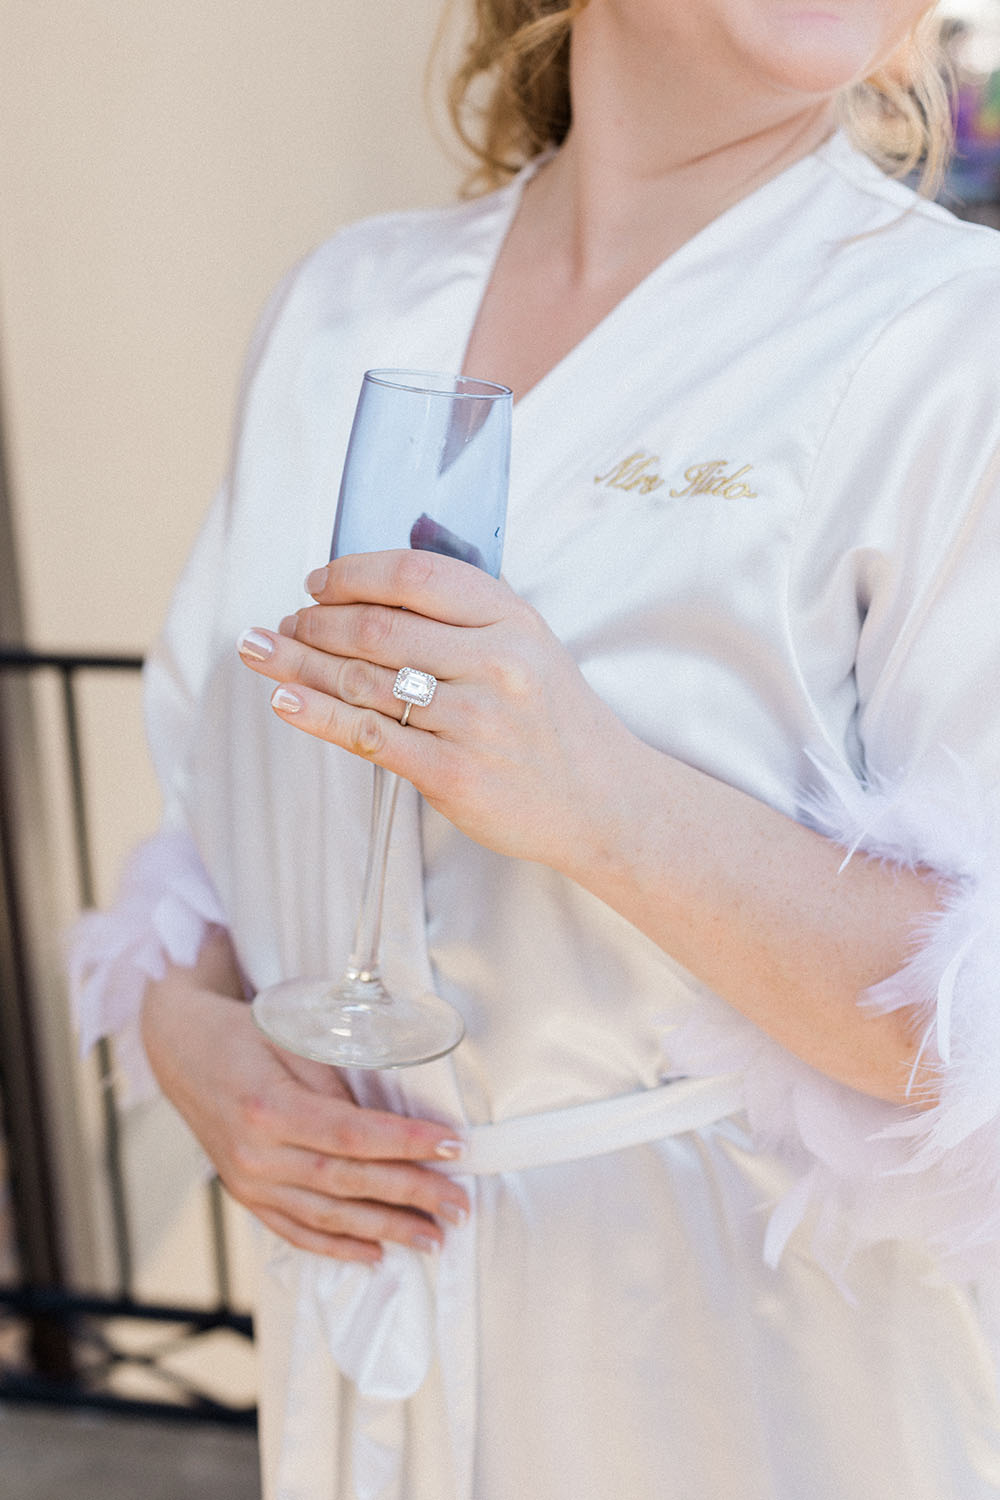 bride on the morning of her wedding day, wearing her customized robe and sipping on champagne